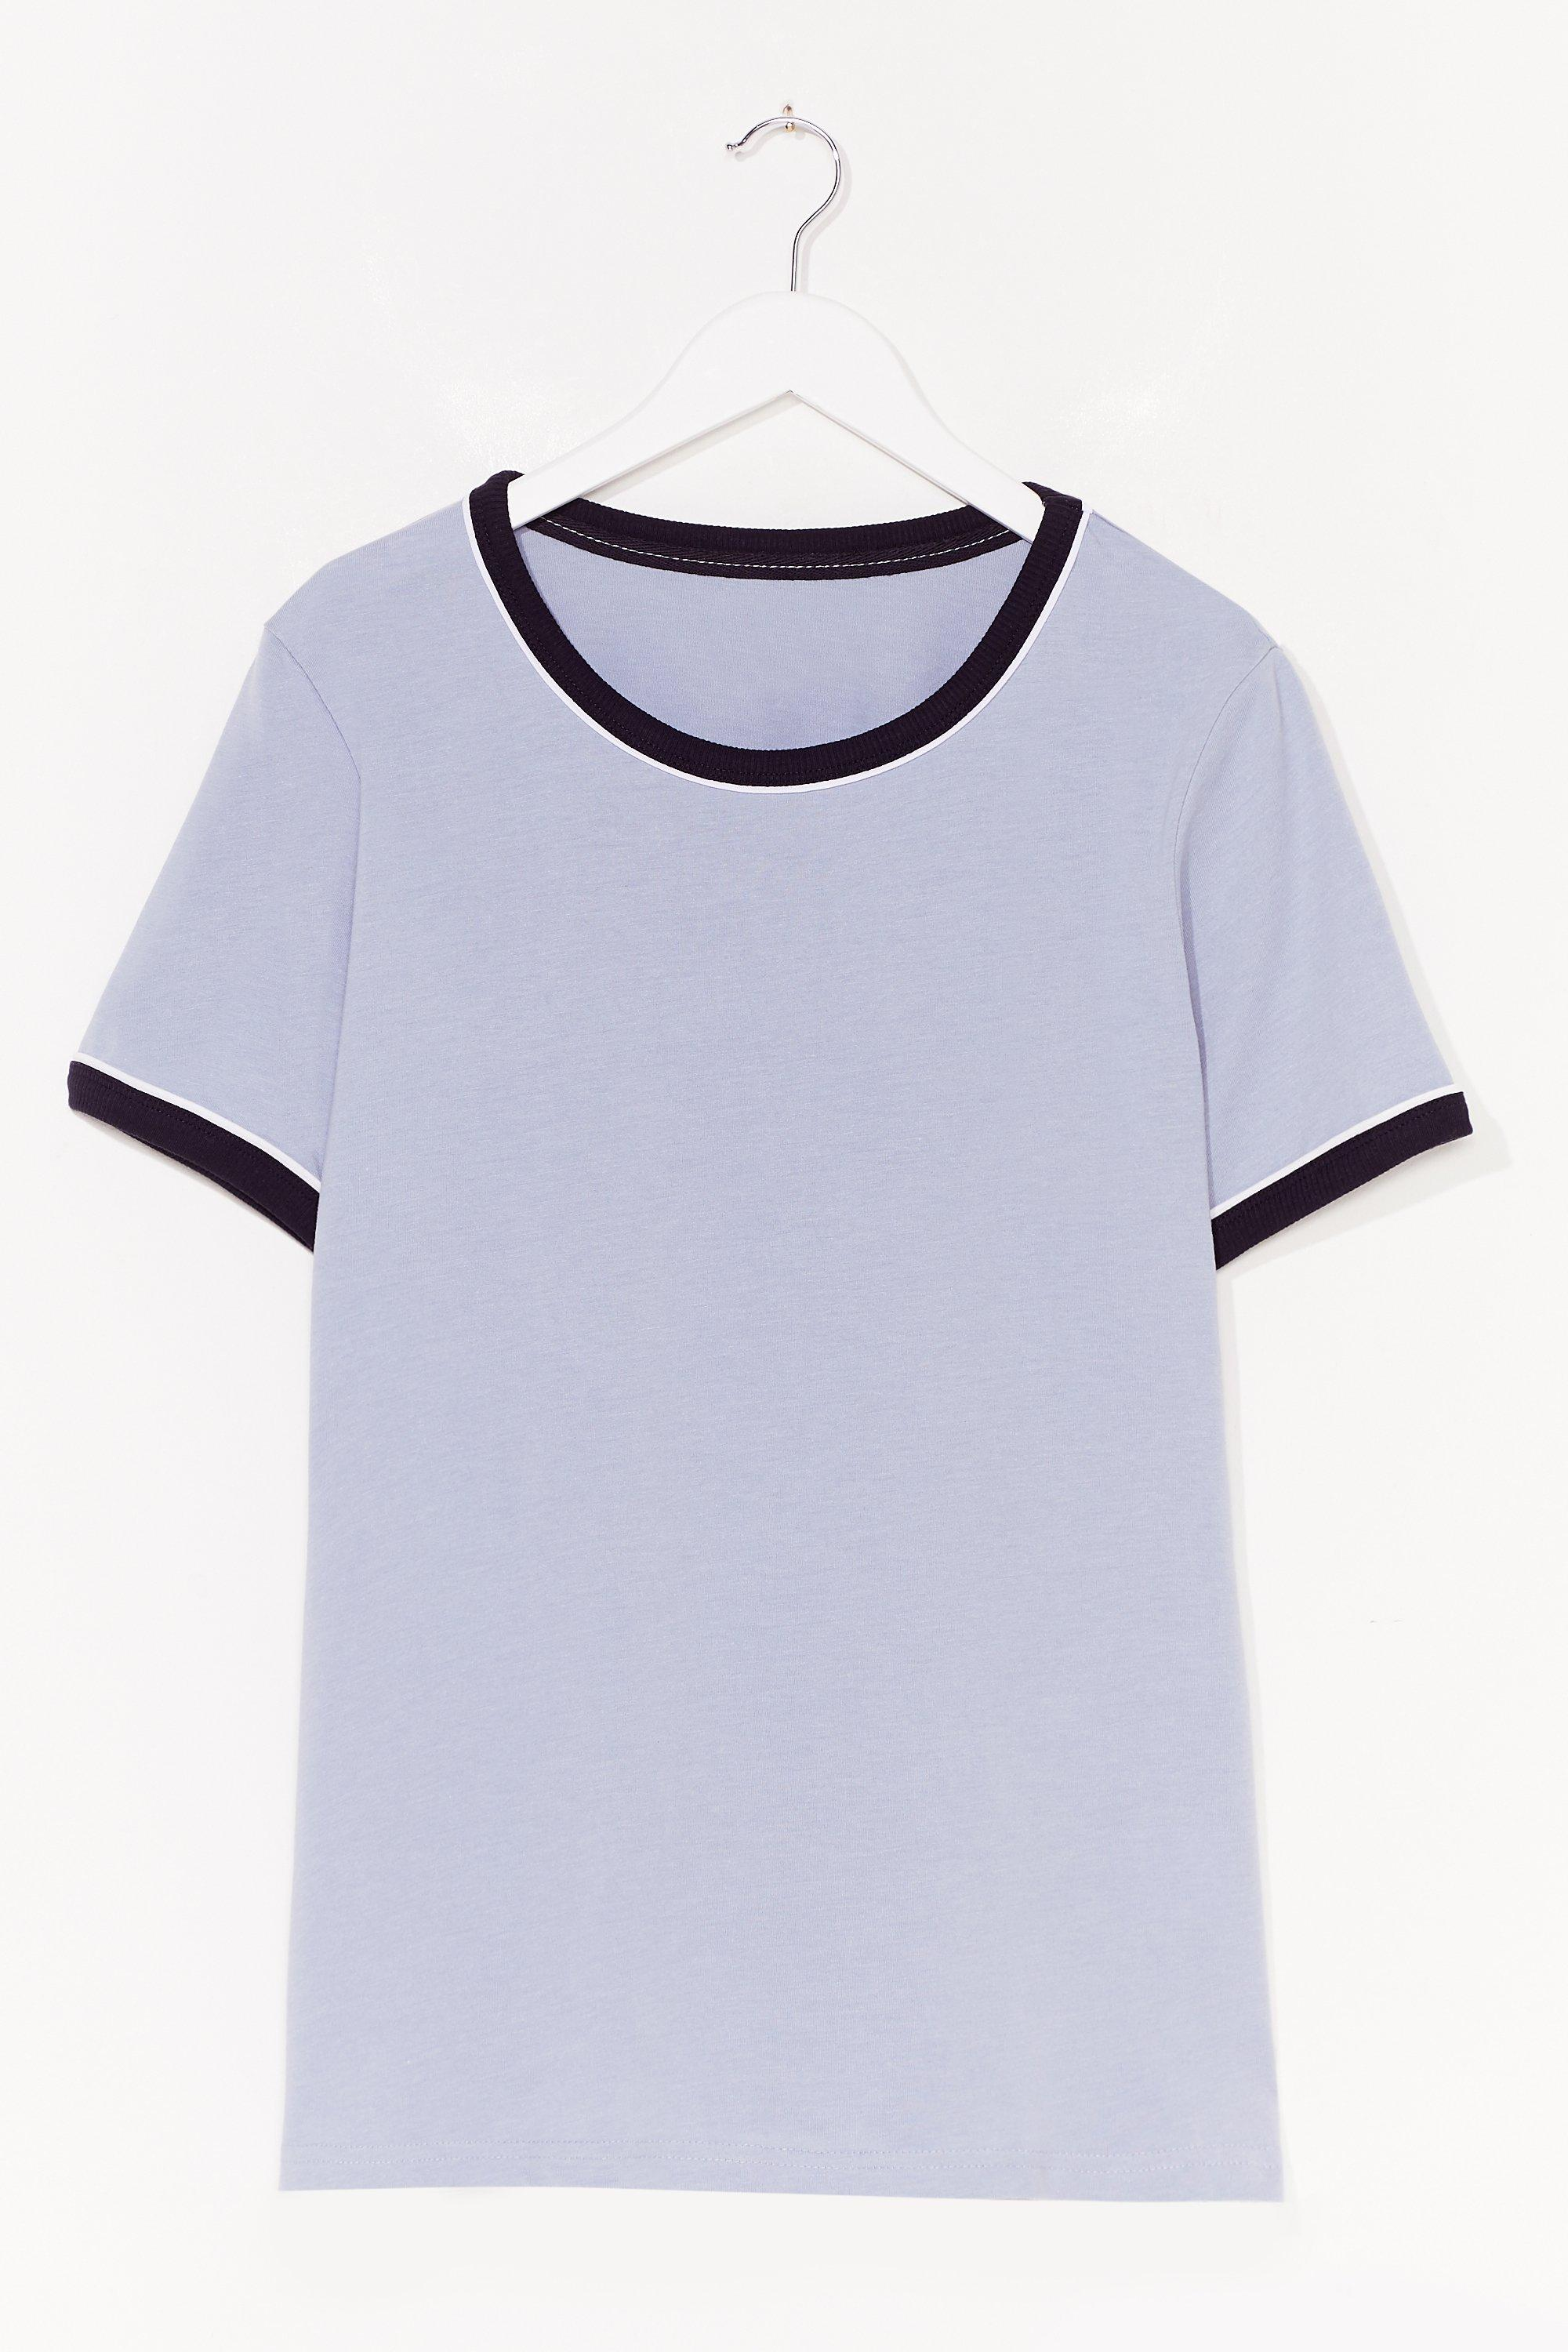 Ringer You Up Plus Contrast Tee 6